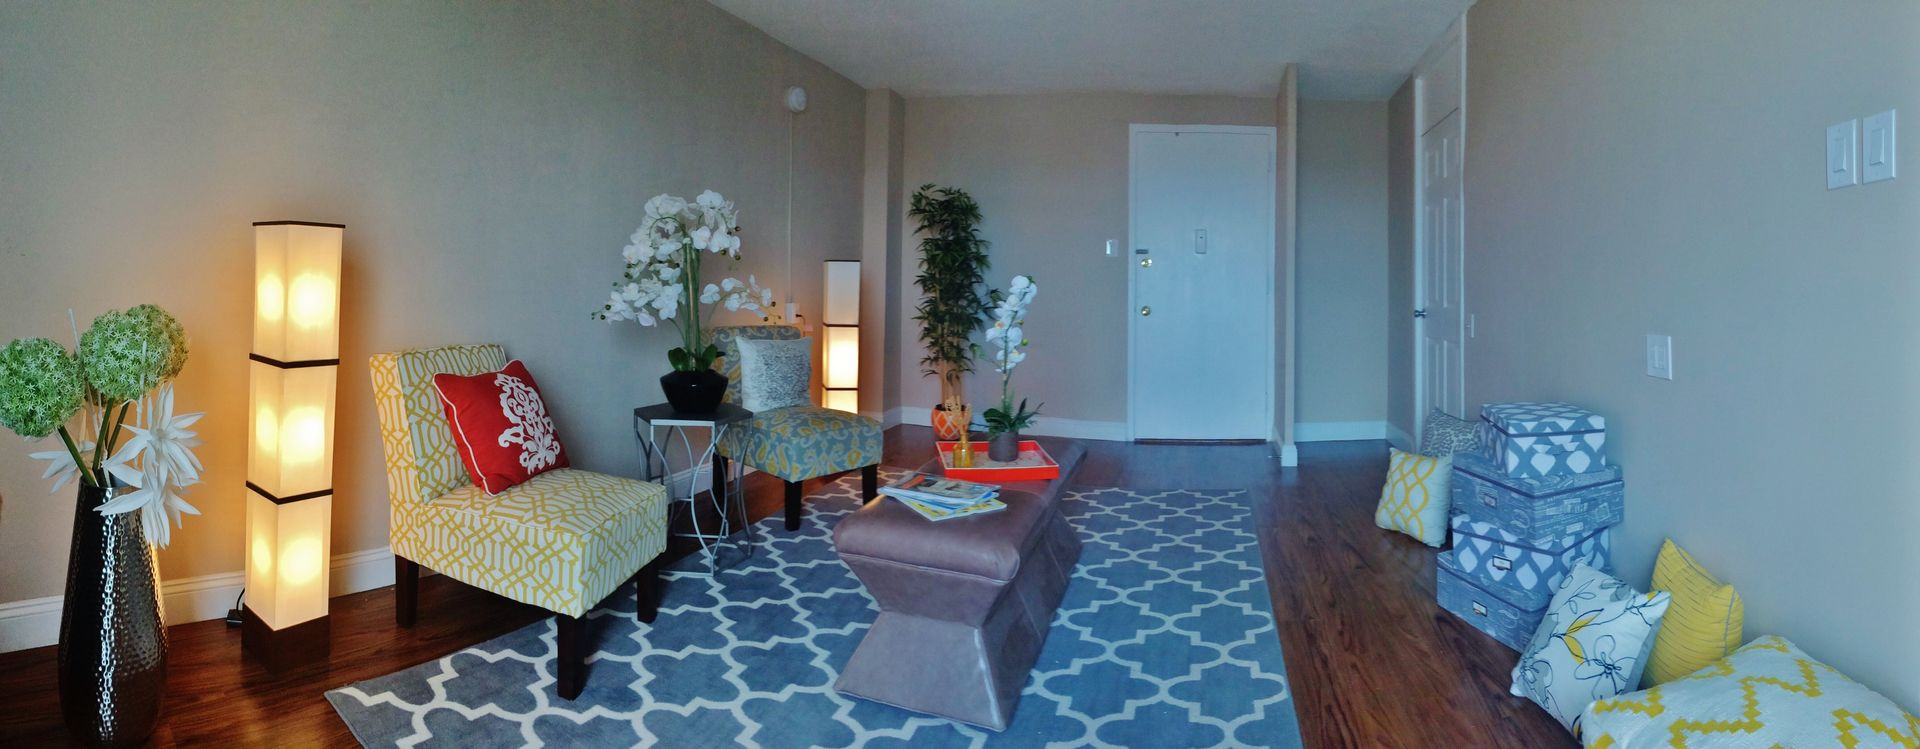 Livingroom Model Panoramic.JPG